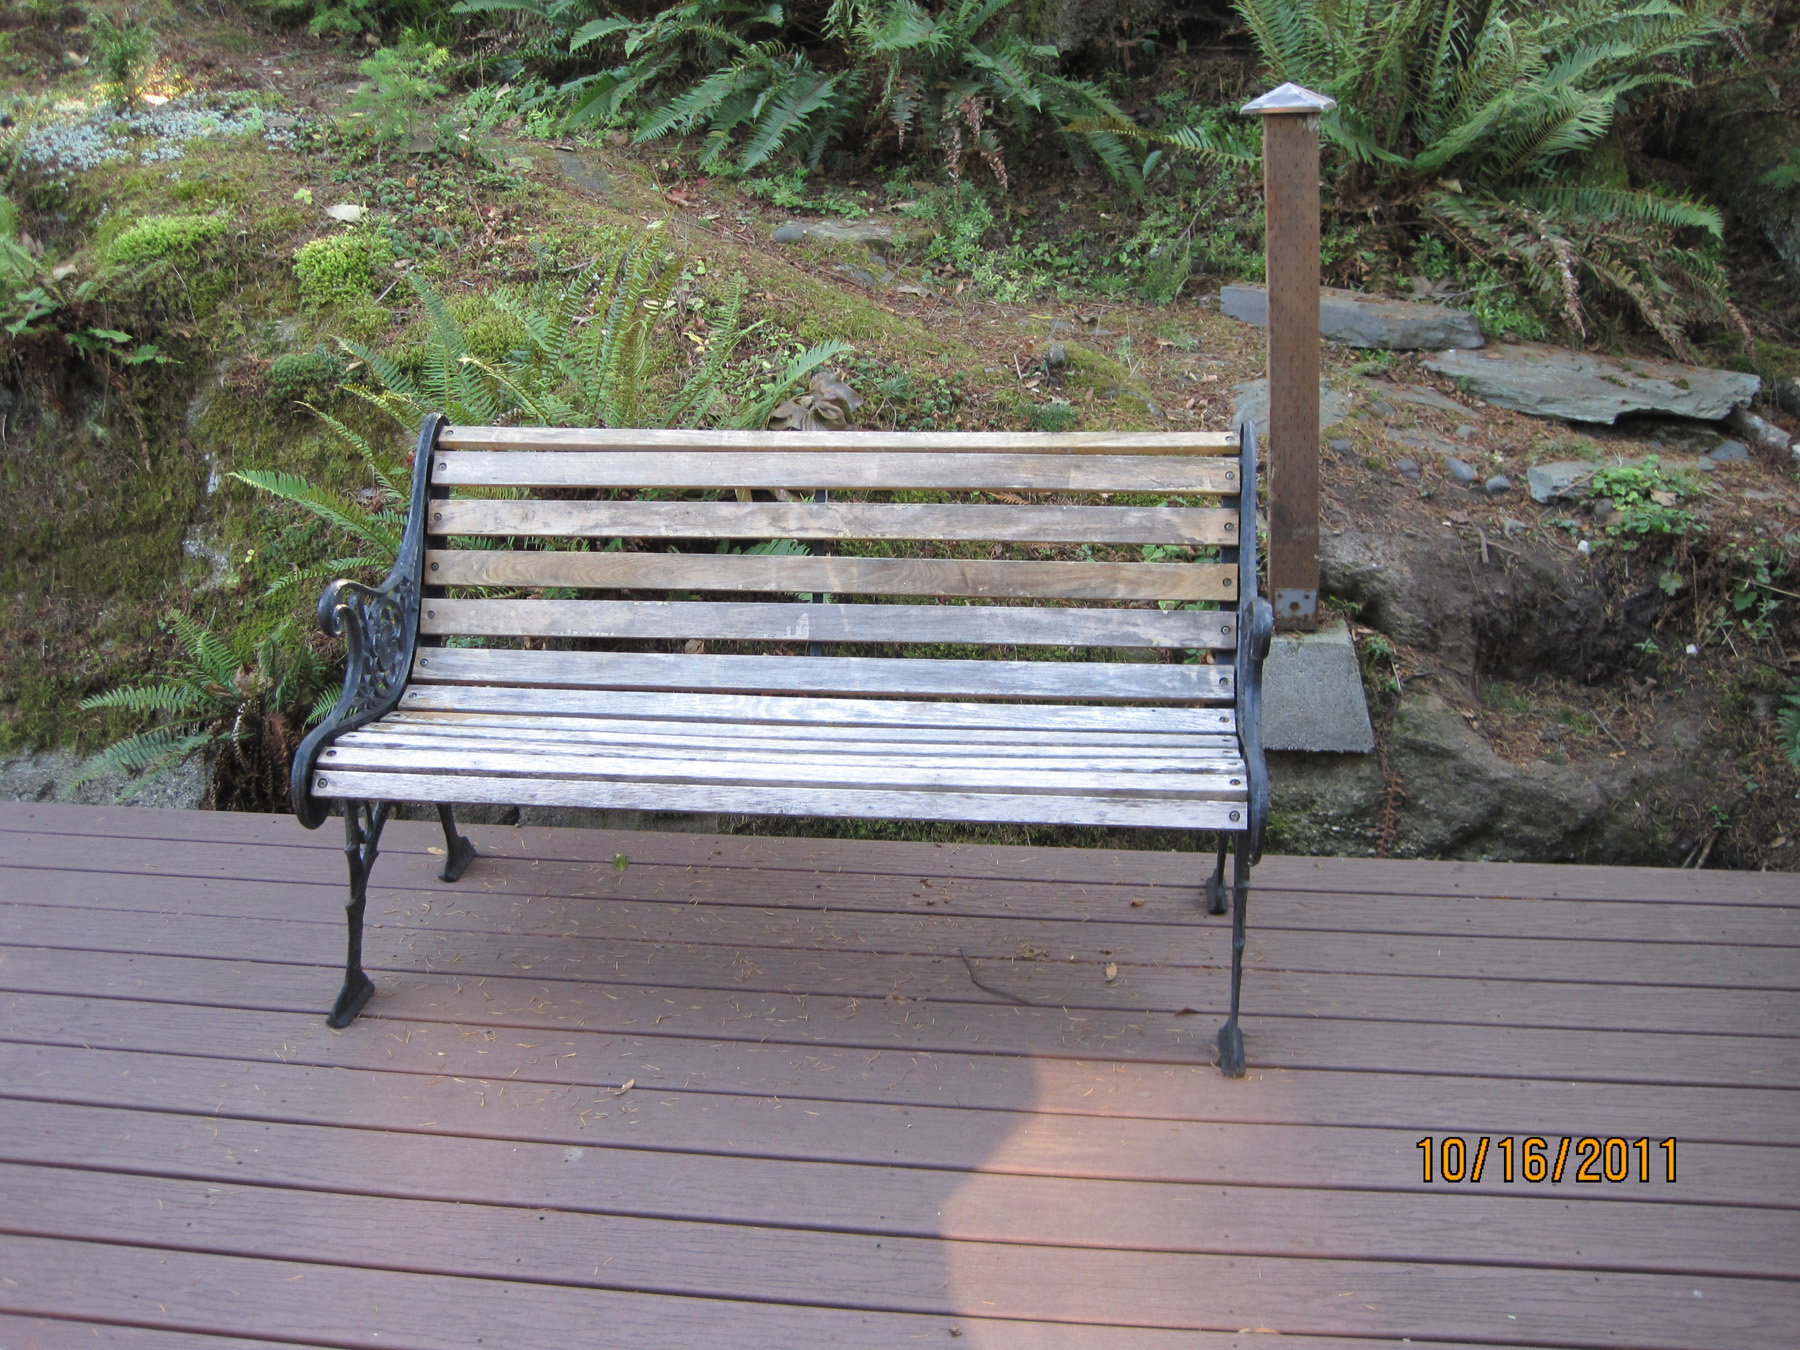 woodworking bench for sale craigslist | Easy Woodworking Plans